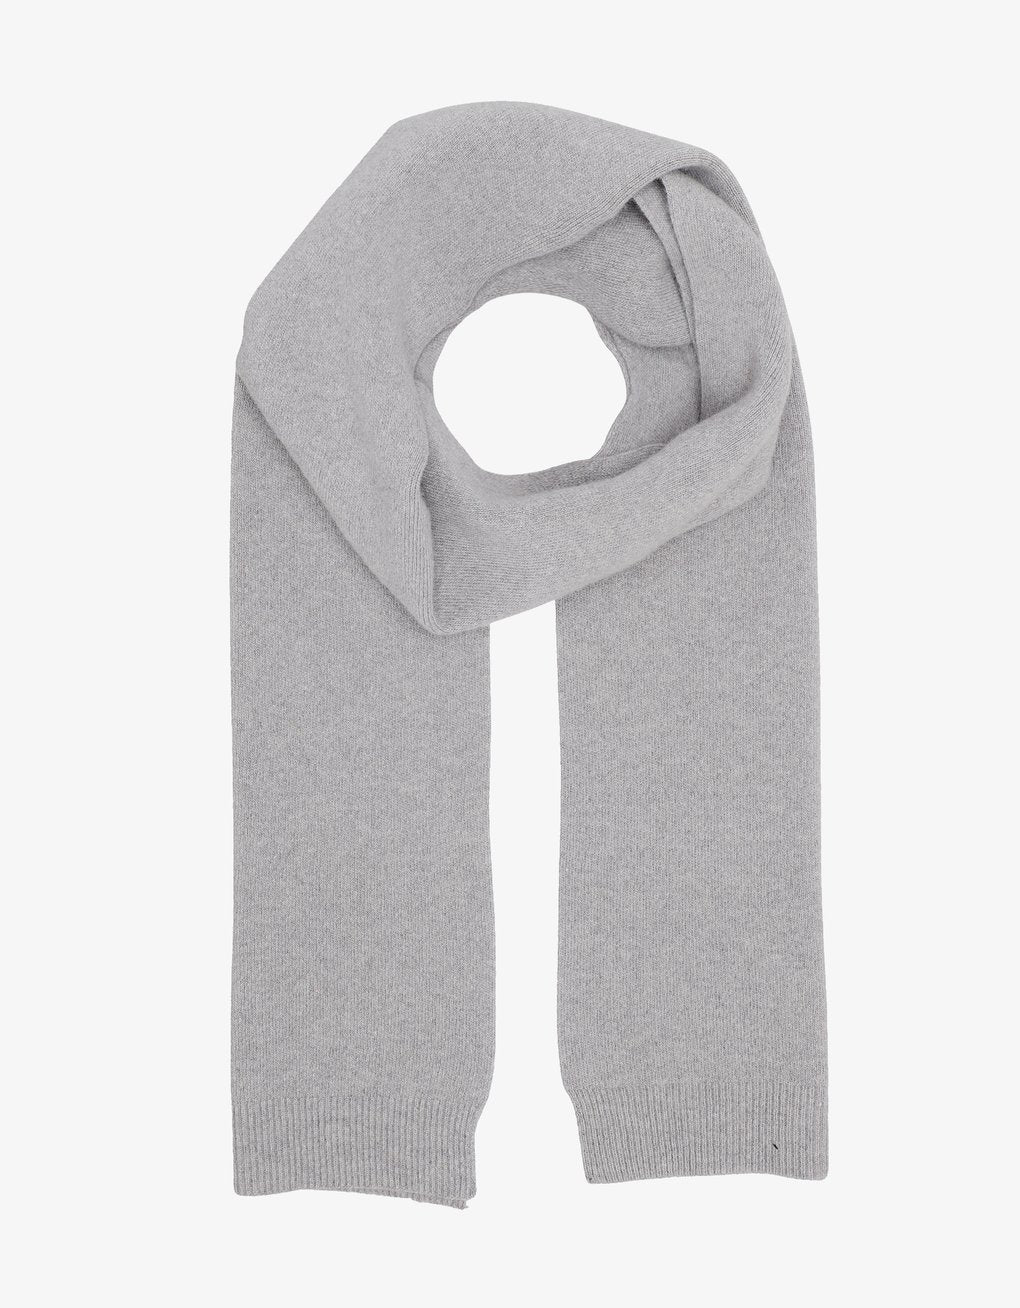 COLORFUL STANDARD | Merino Wool Scarf | Heather Grey - LONDØNWORKS